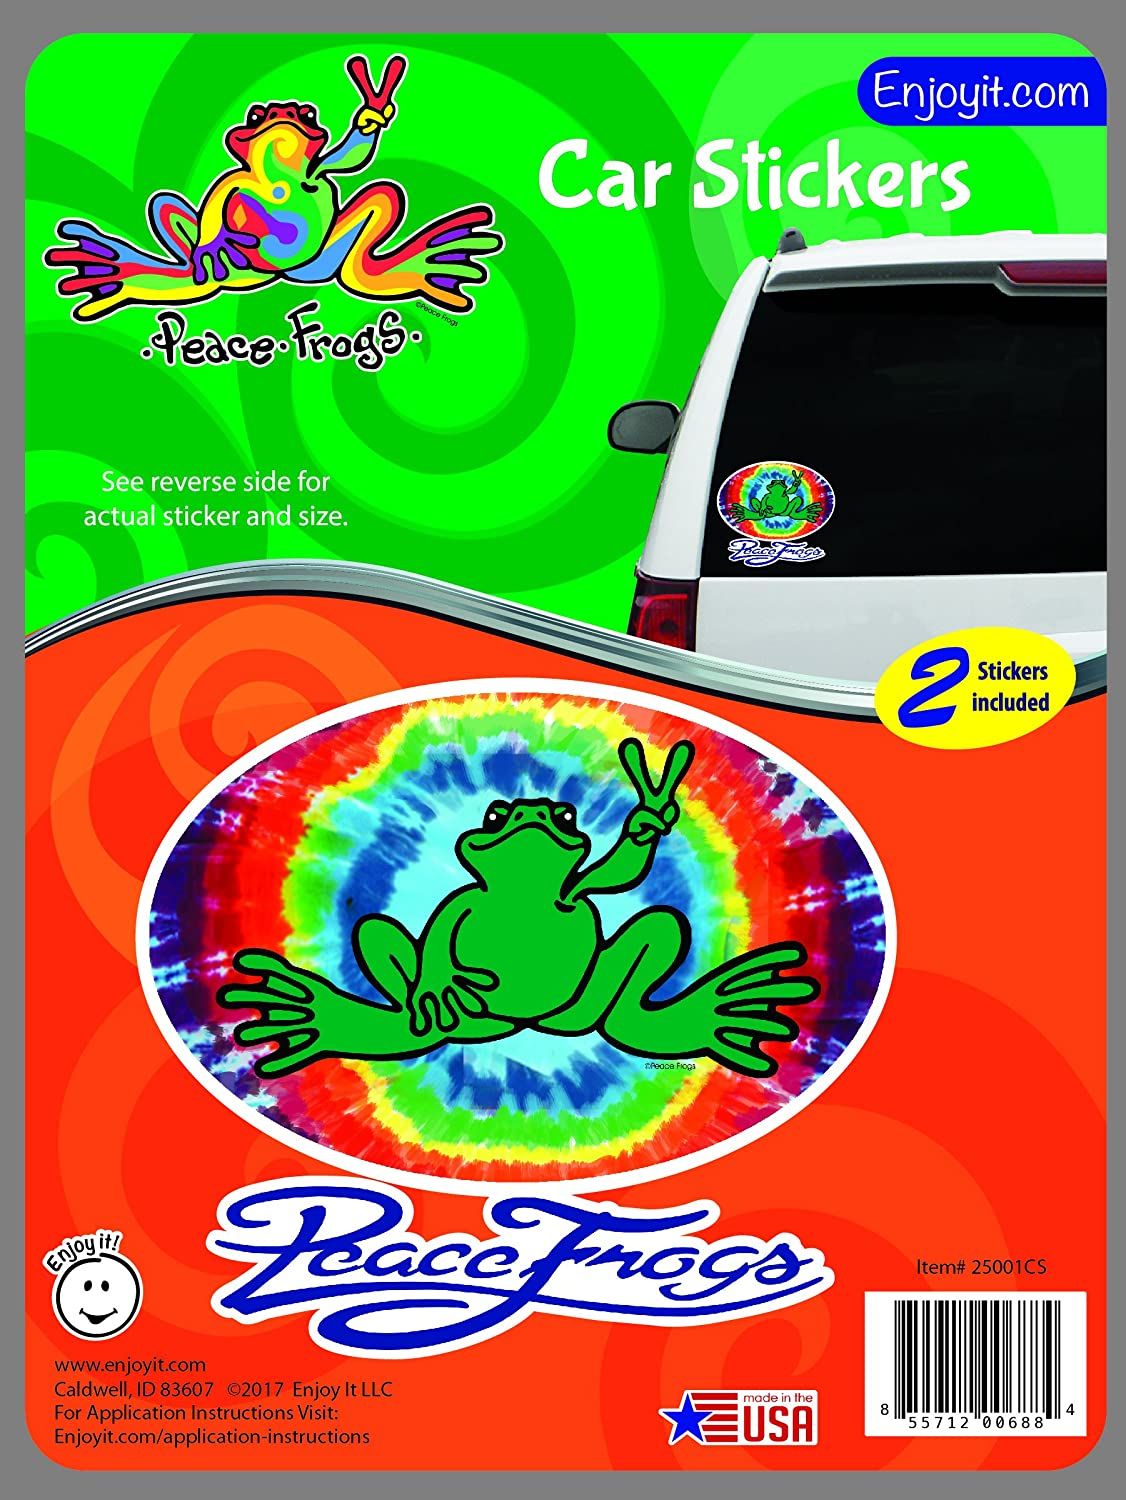 2 pieces Outdoor Rated Vinyl Sticker Decal for Windows Laptops or Crafts Enjoy It Peace Frogs Tie Die Oval Peace Frogs Car Sticker Bumpers